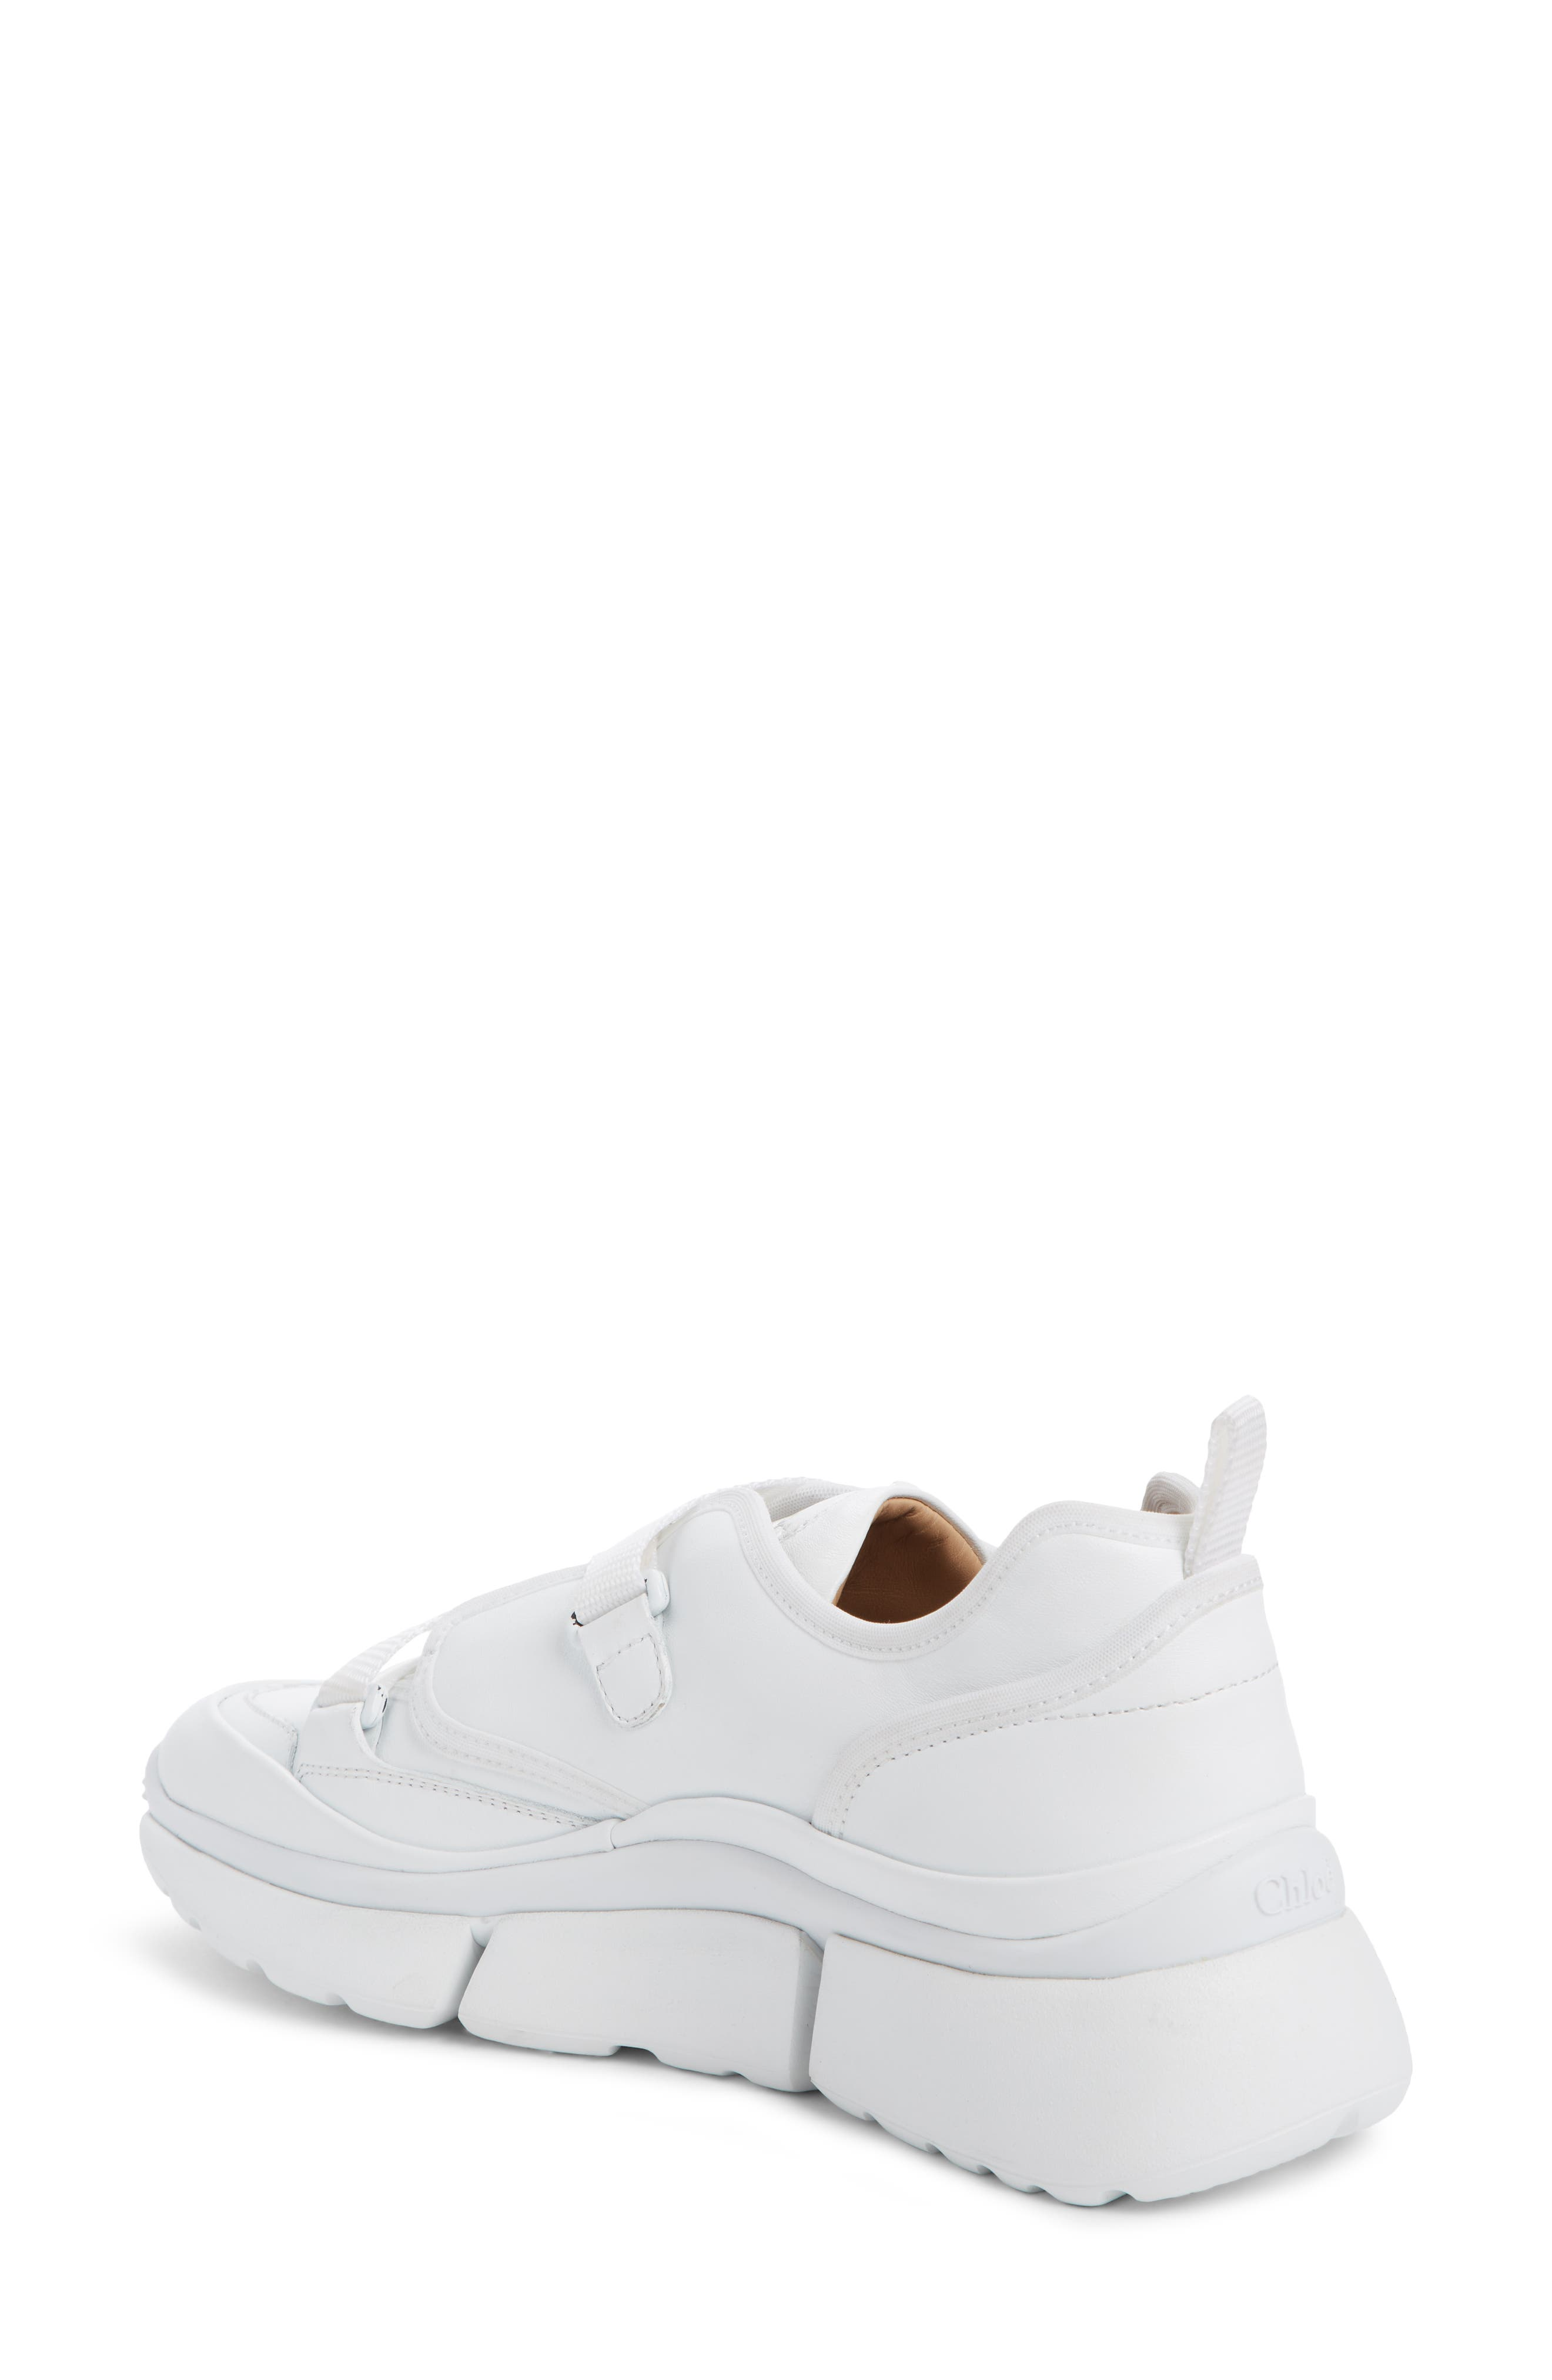 Sonnie Sneaker,                             Alternate thumbnail 2, color,                             WHITE LEATHER